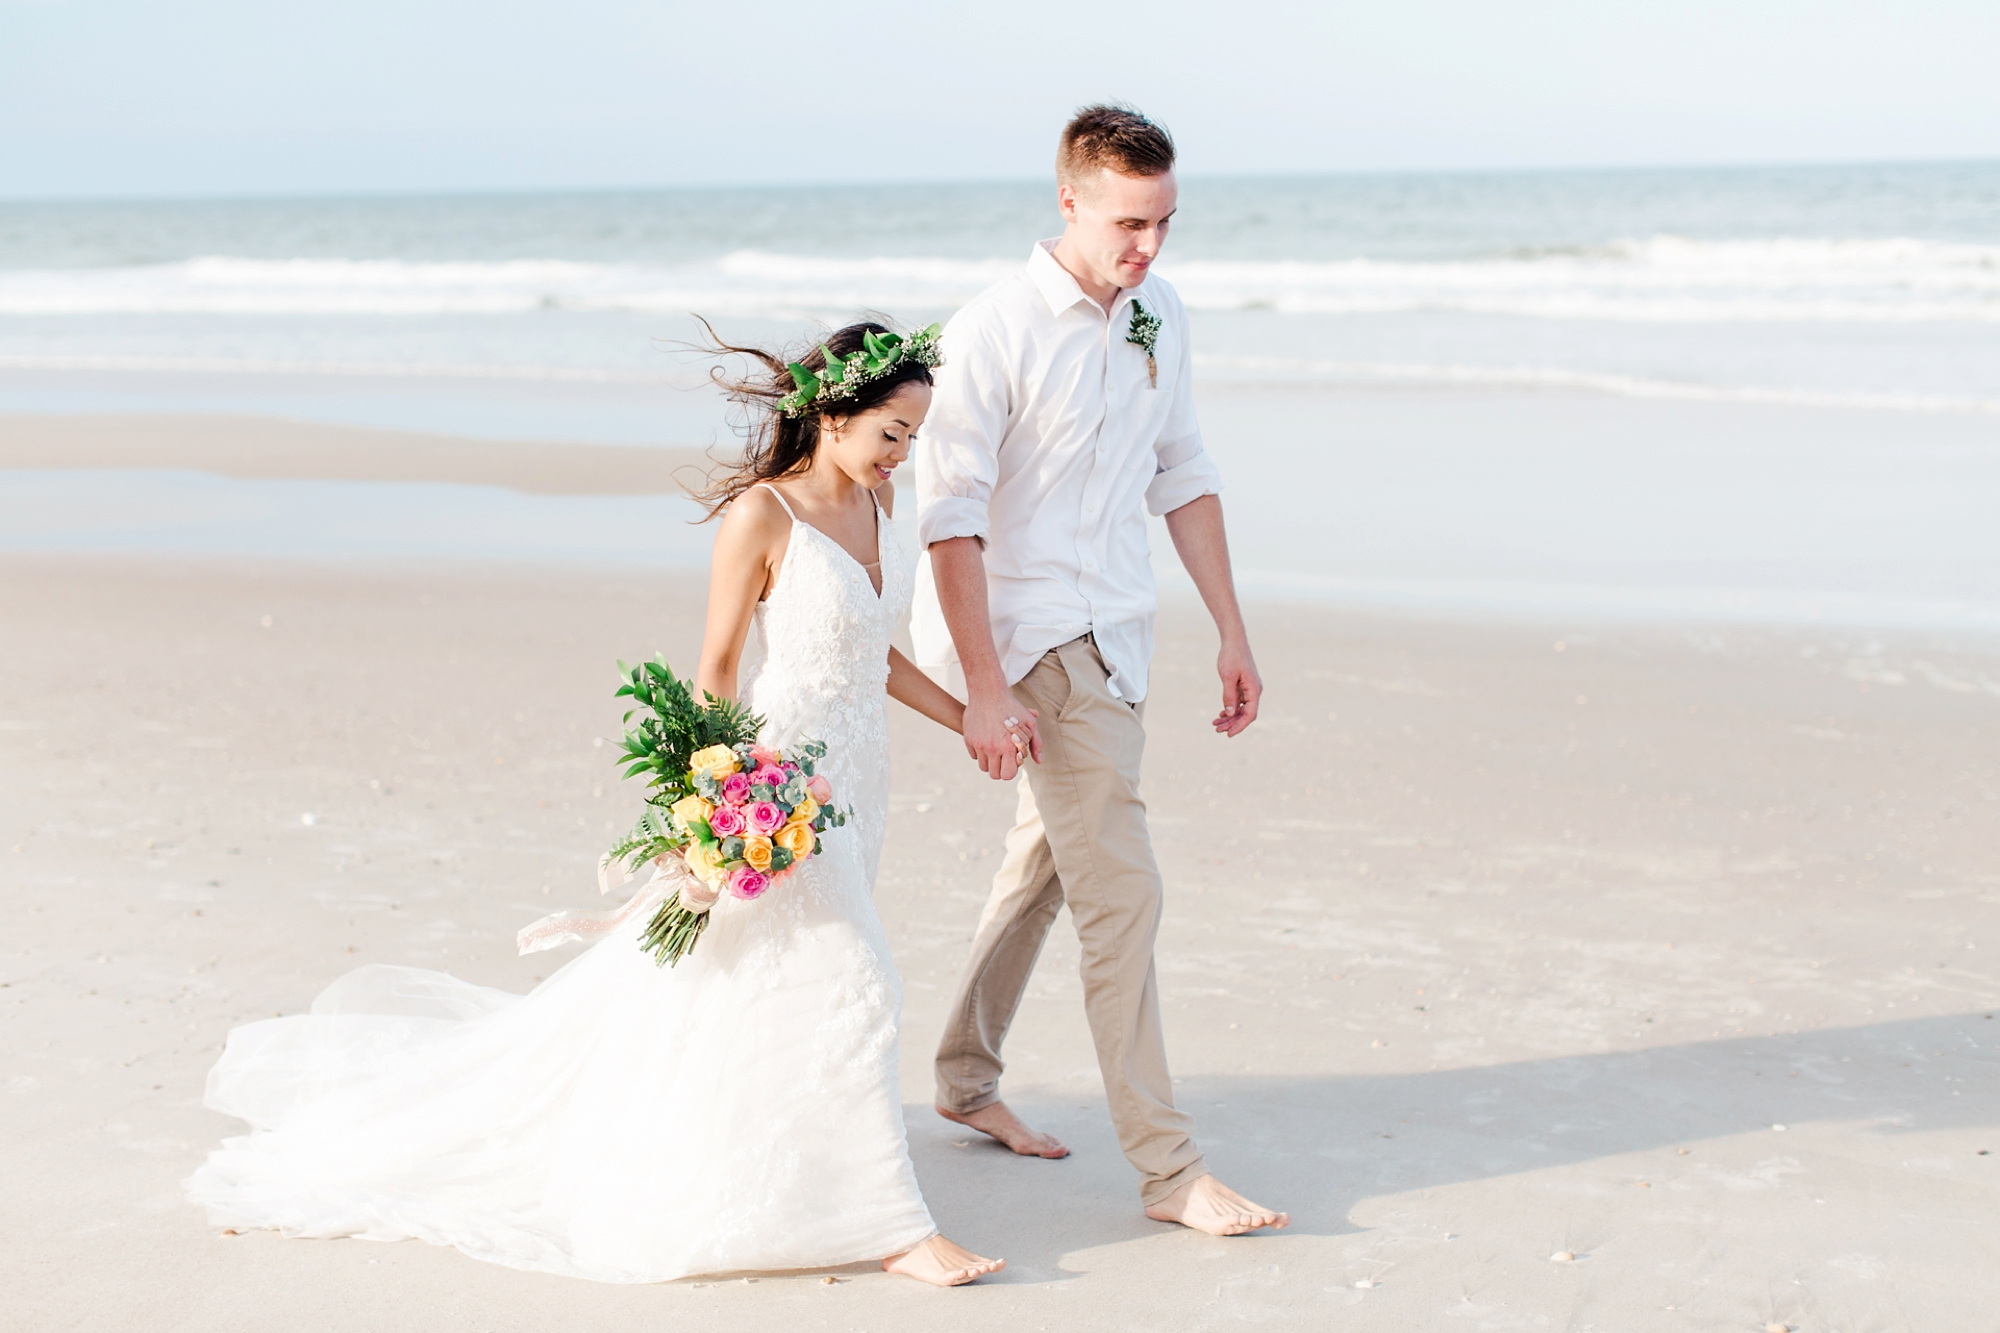 Natalie Broach Photography-Beach Wedding | St Augustine Beach, Florida Wedding | Florida Wedding Photographer | Destination Wedding